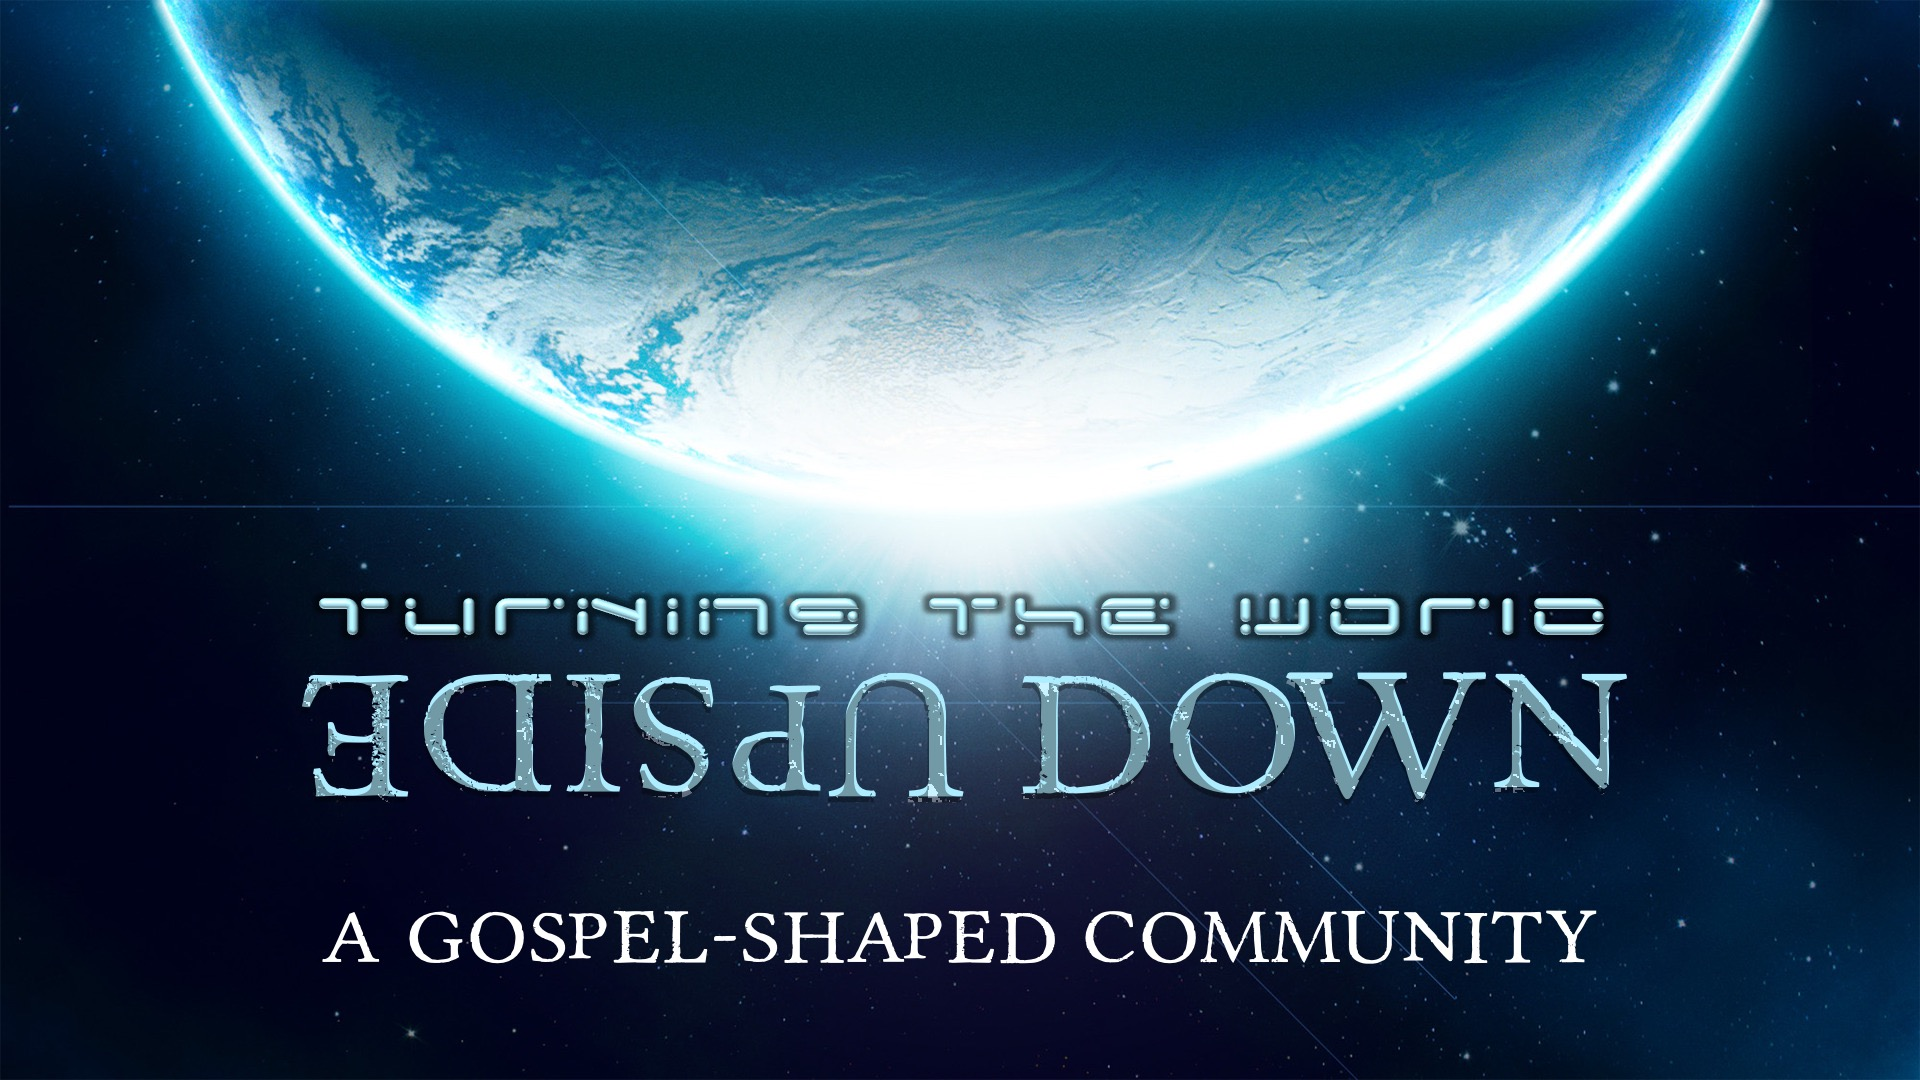 A Gospelshaped Community